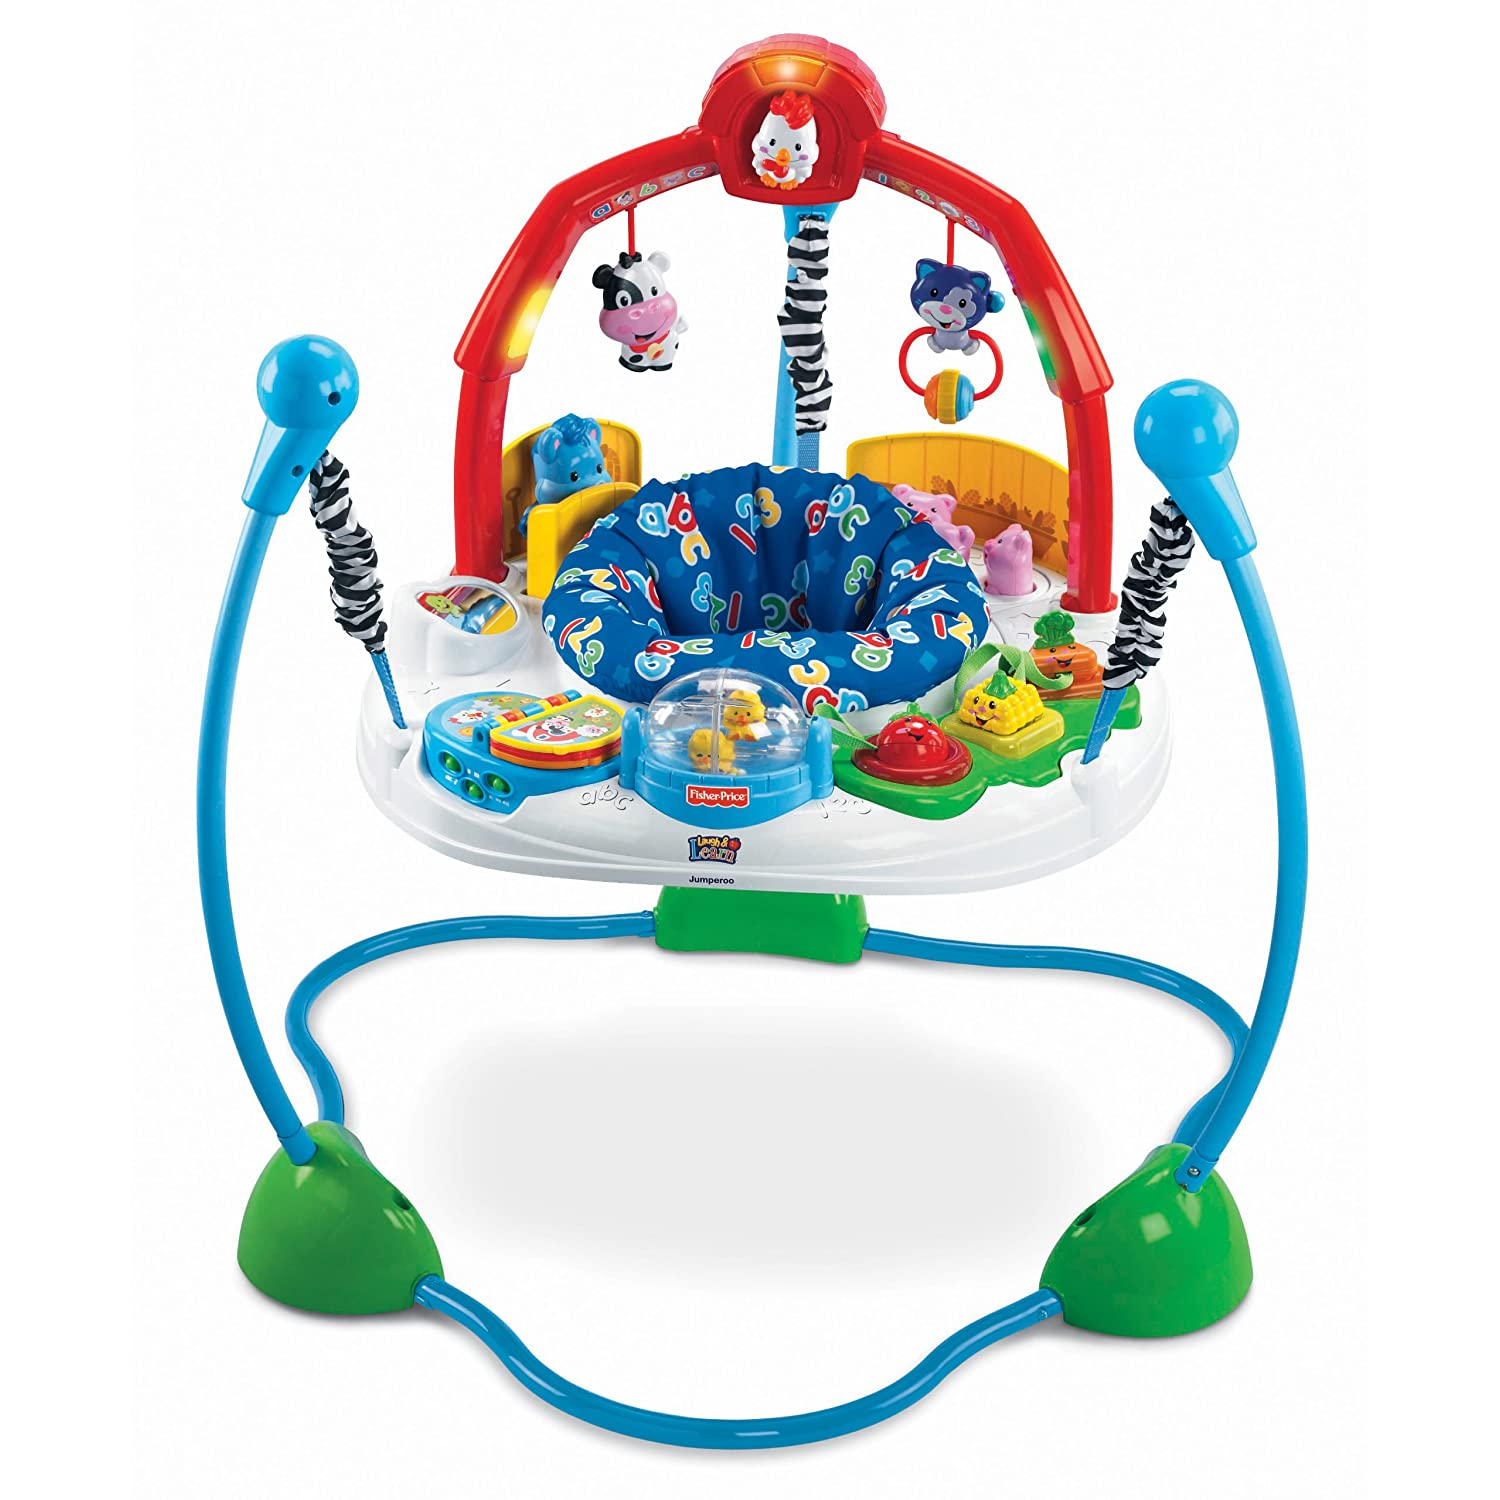 Babies baby toys 3 months